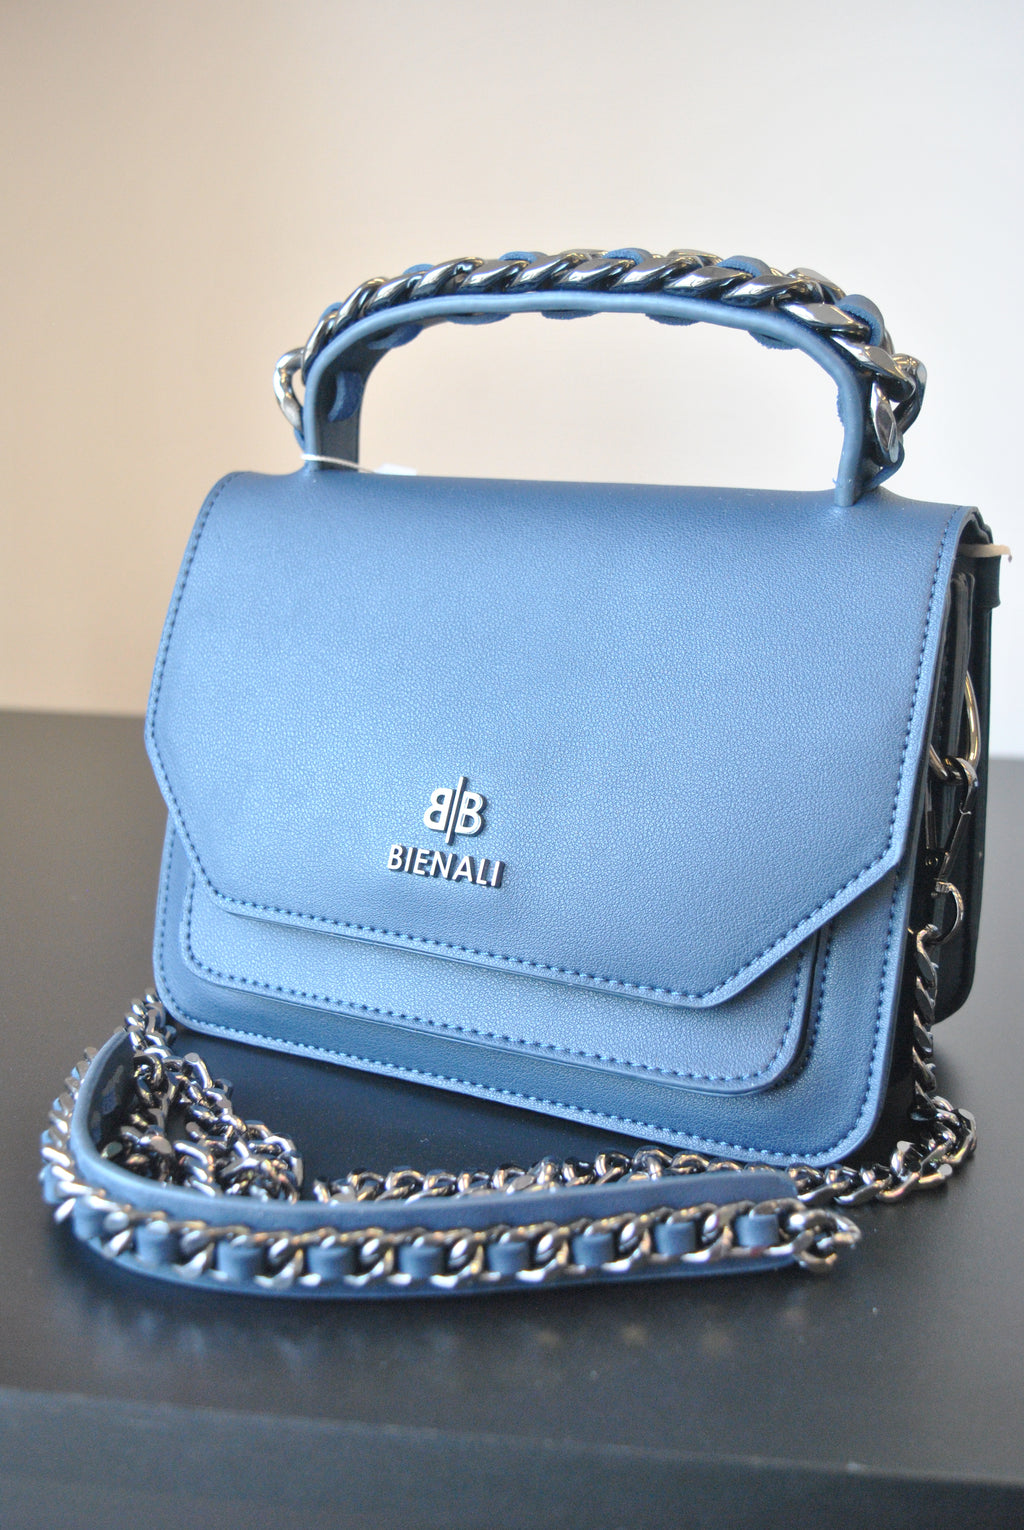 NAVY BLUE MINI SATCHEL WITH DETACHABLE CROSSBODY CHAIN